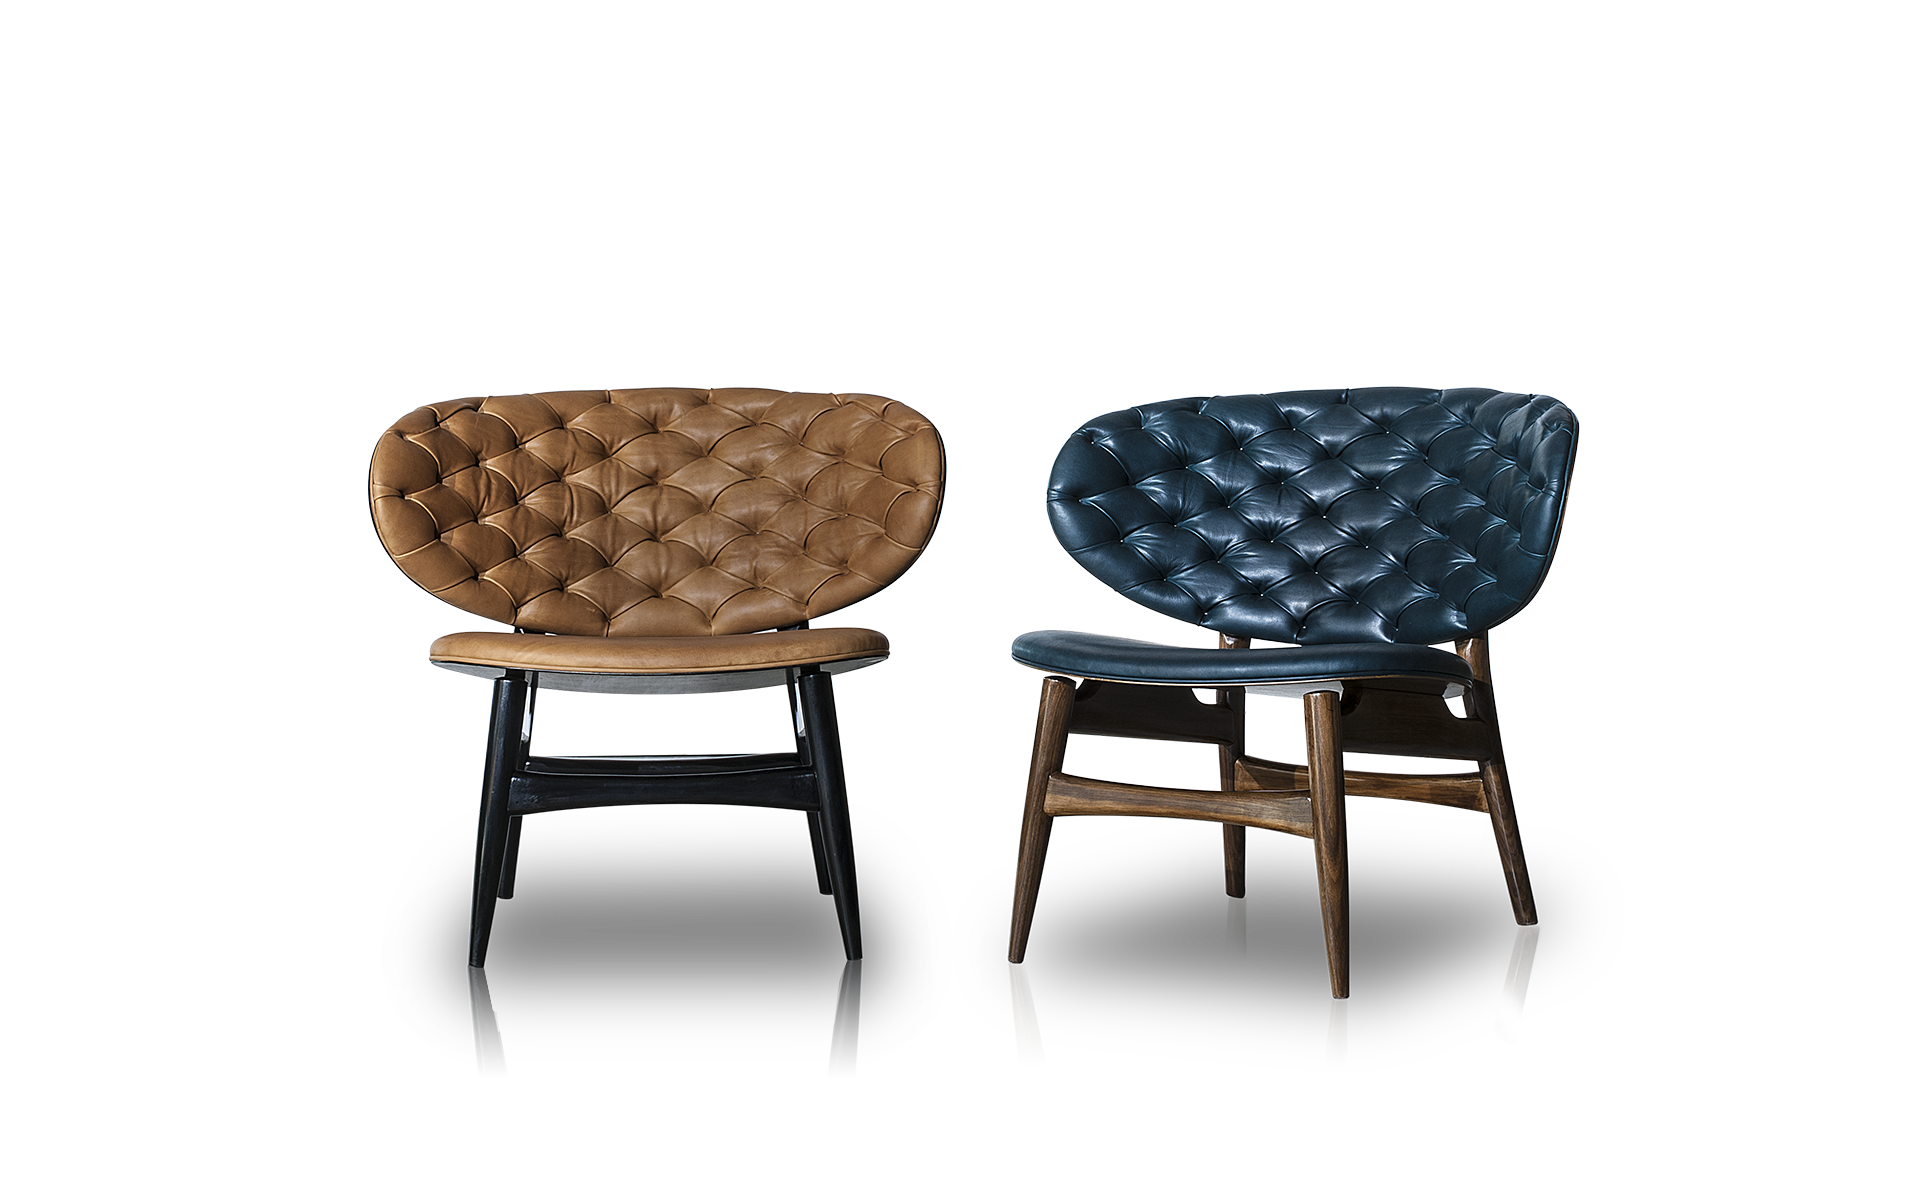 Small Armchairs For Bedrooms Dalma Little Armchair By Draga E Aurel For Baxter Seat Lounge